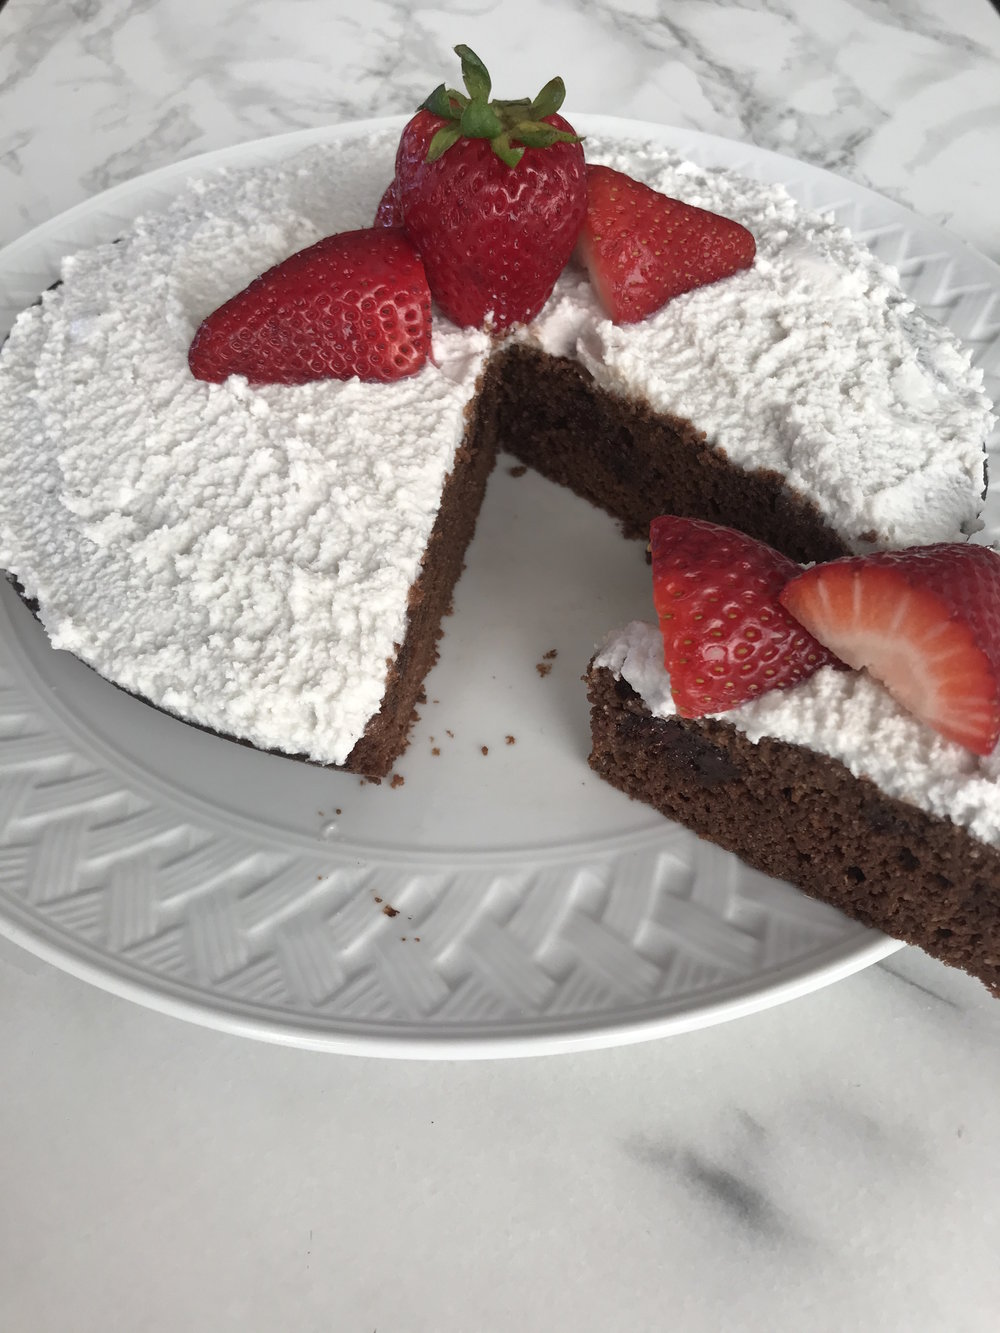 - The version I made this time is keto/low carb. It contains butter, eggs etc. I will do my best to give you other options in case you do not want to use butter. I don't think a flax egg will work for this recipe. But you can try.